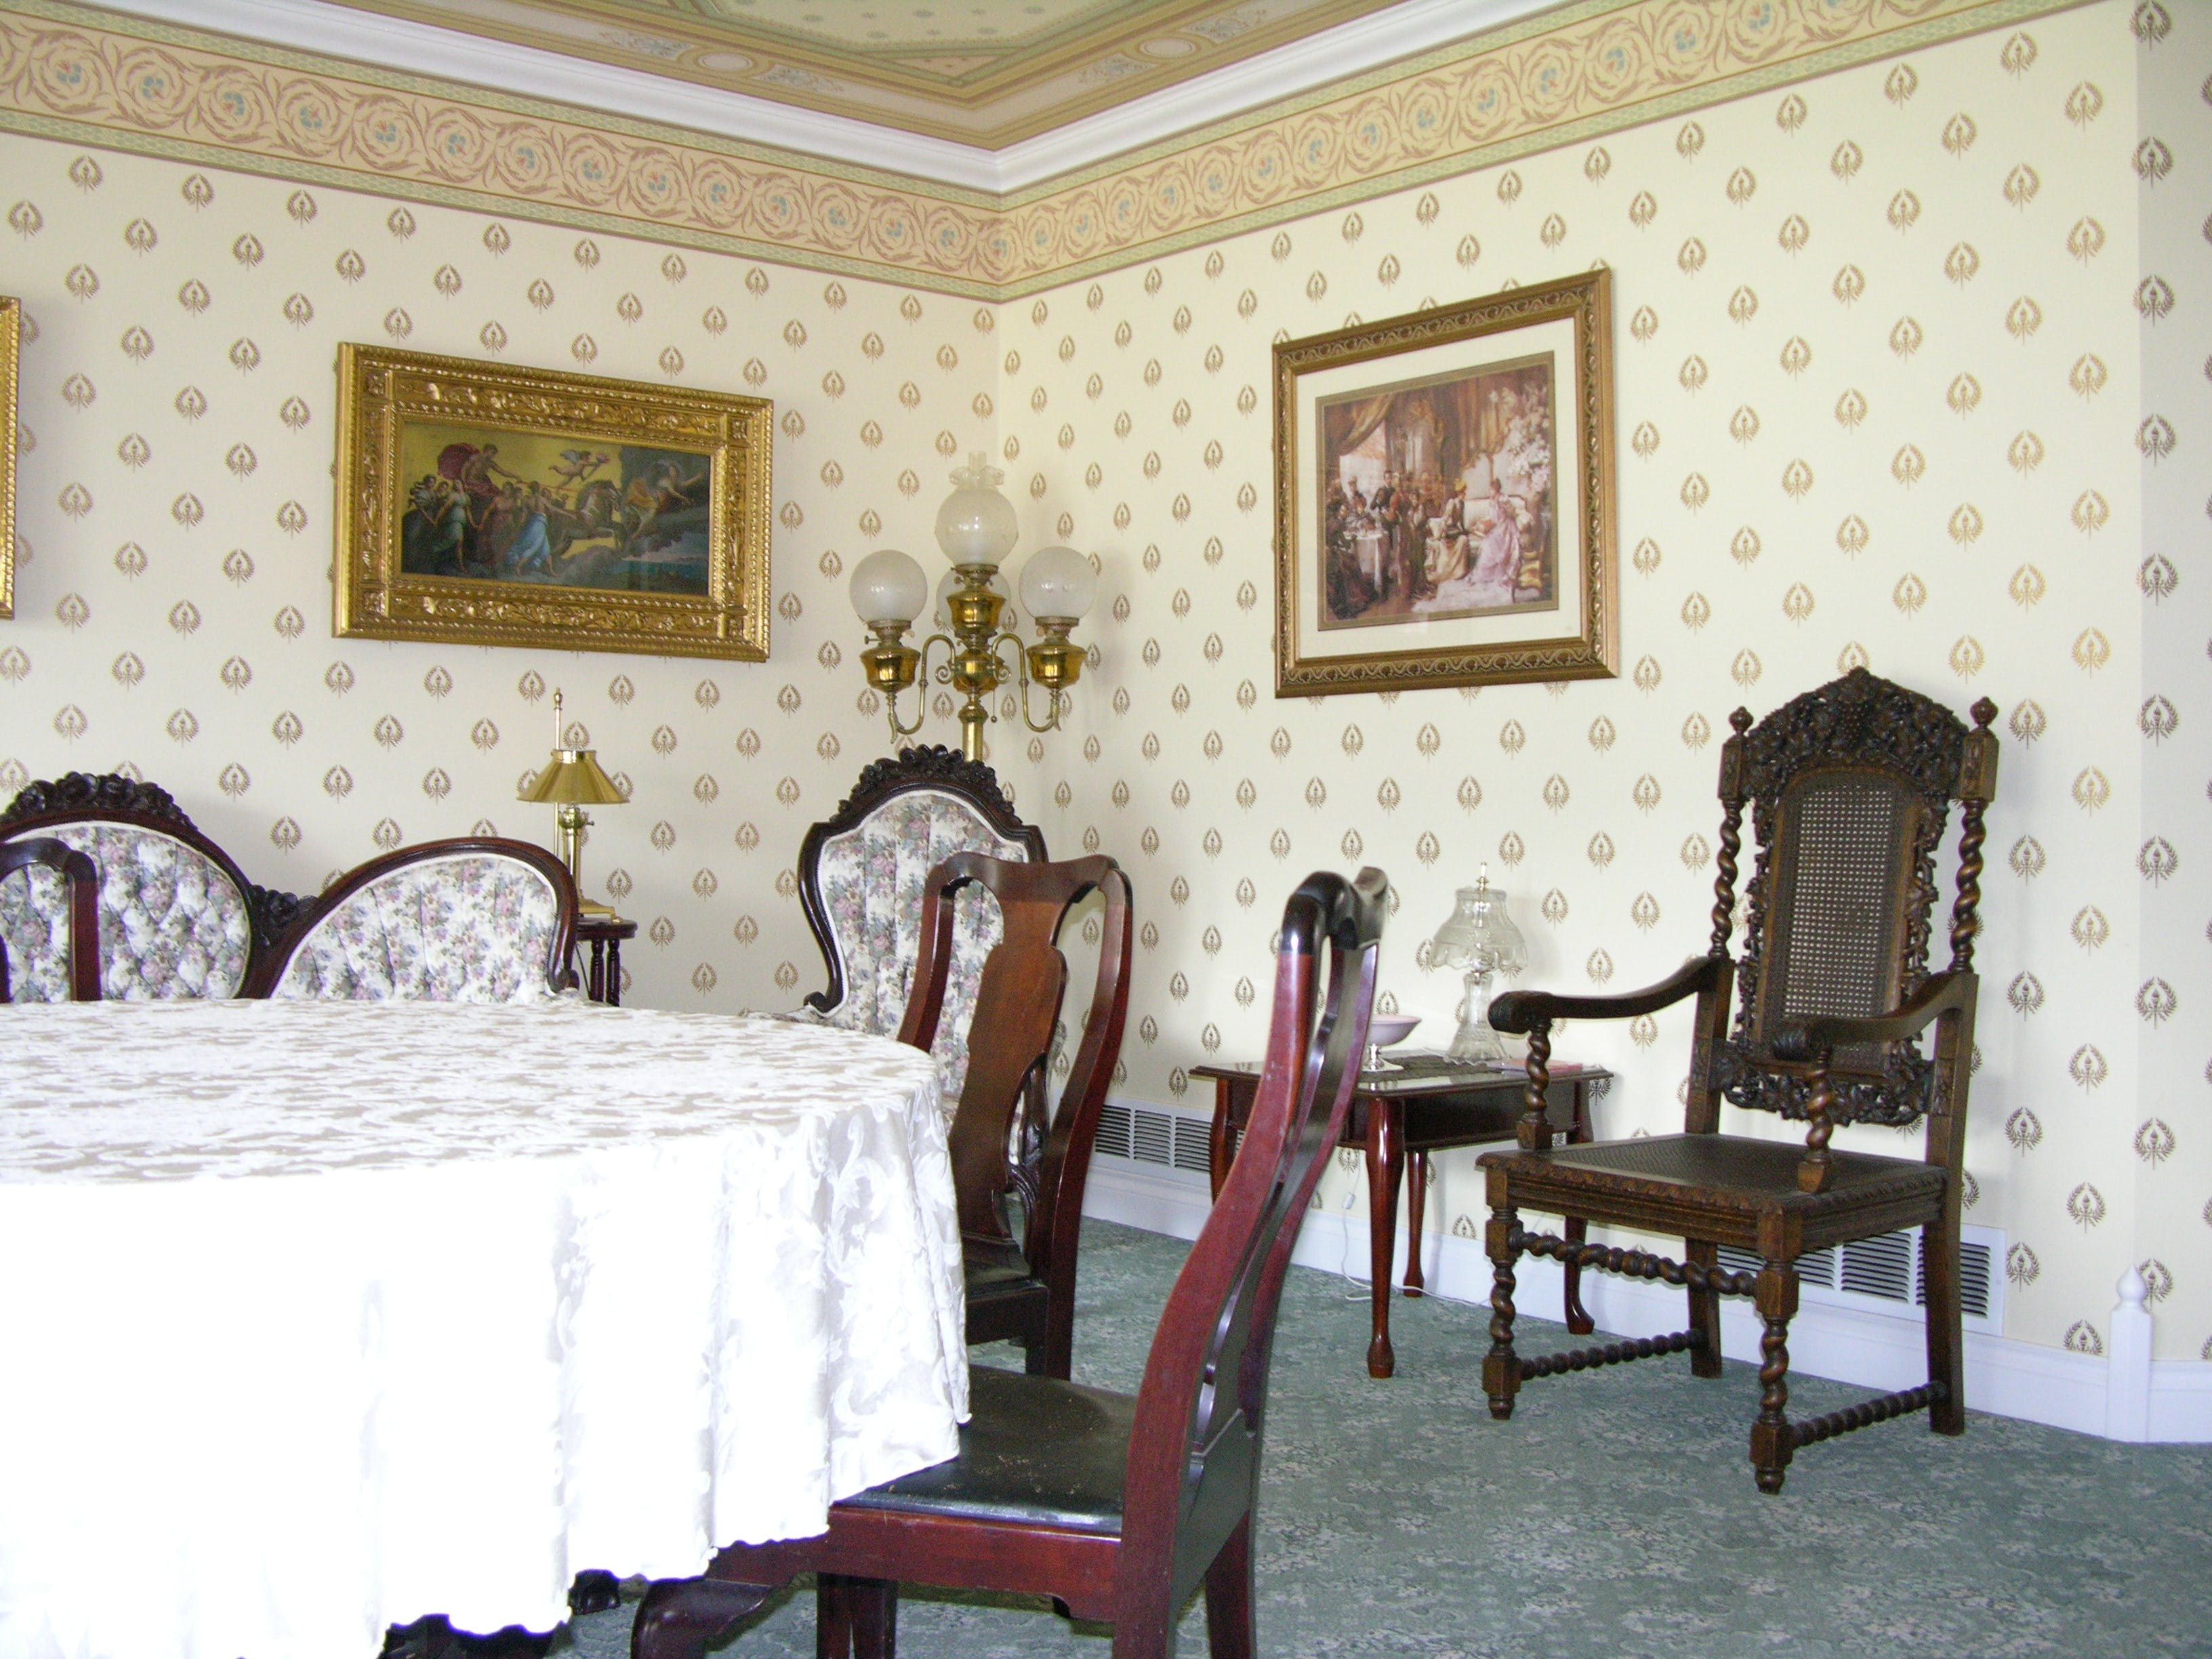 Free stock photo of wall paper, victorian dining room, formal living